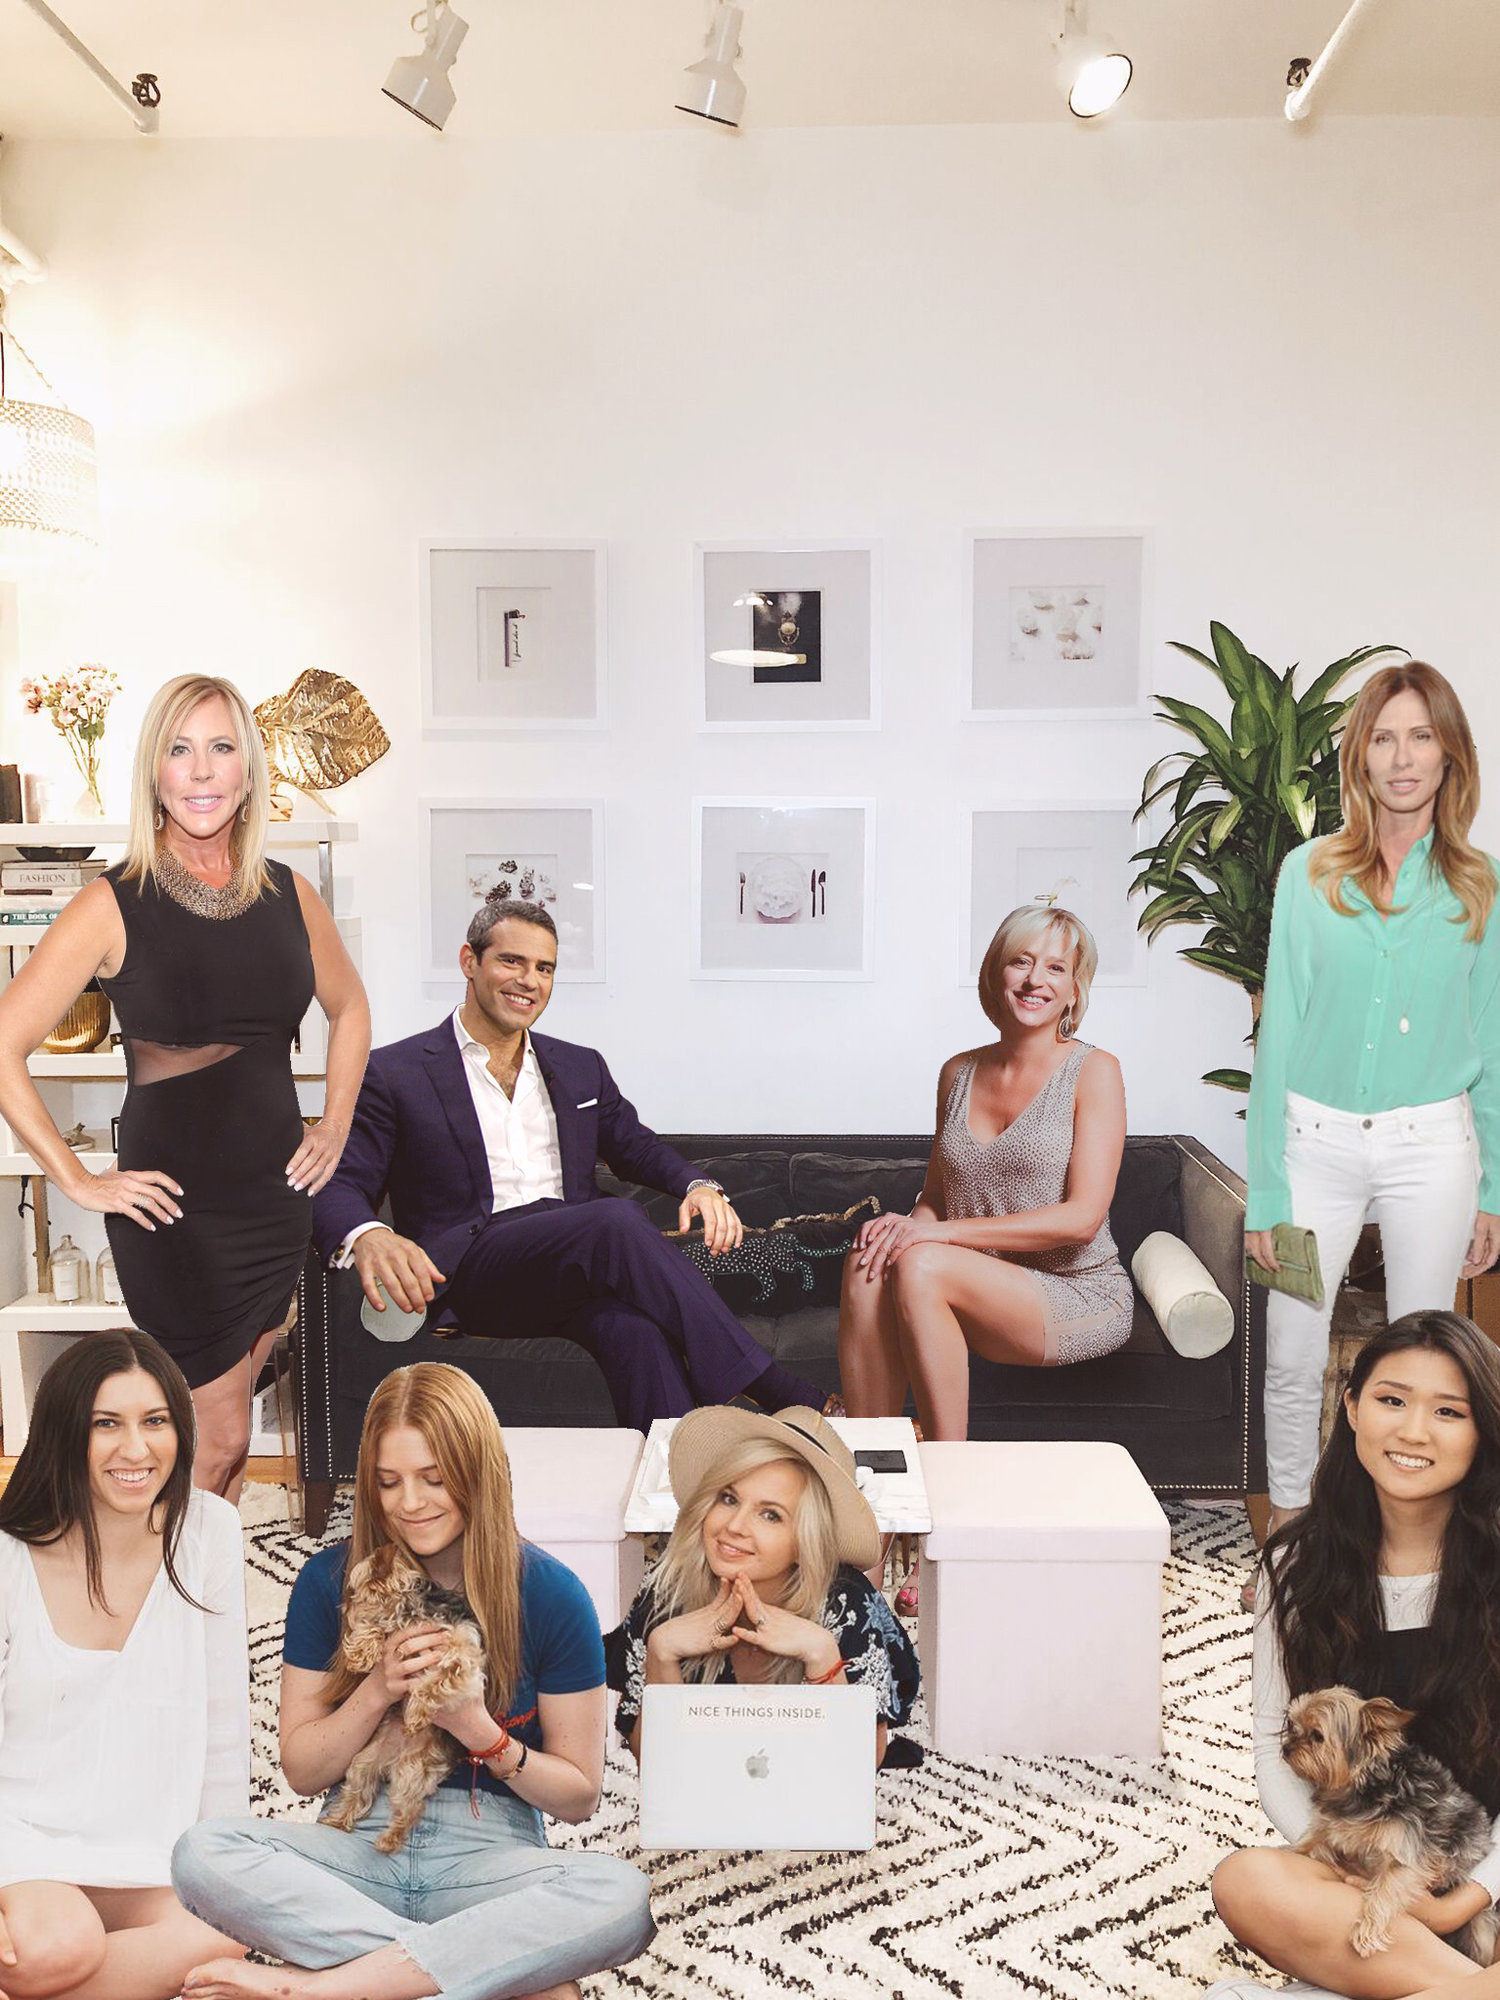 The+Real+Lessons+I+Learned+From+the+Real+Housewives+The+Sunday+Issue.jpg